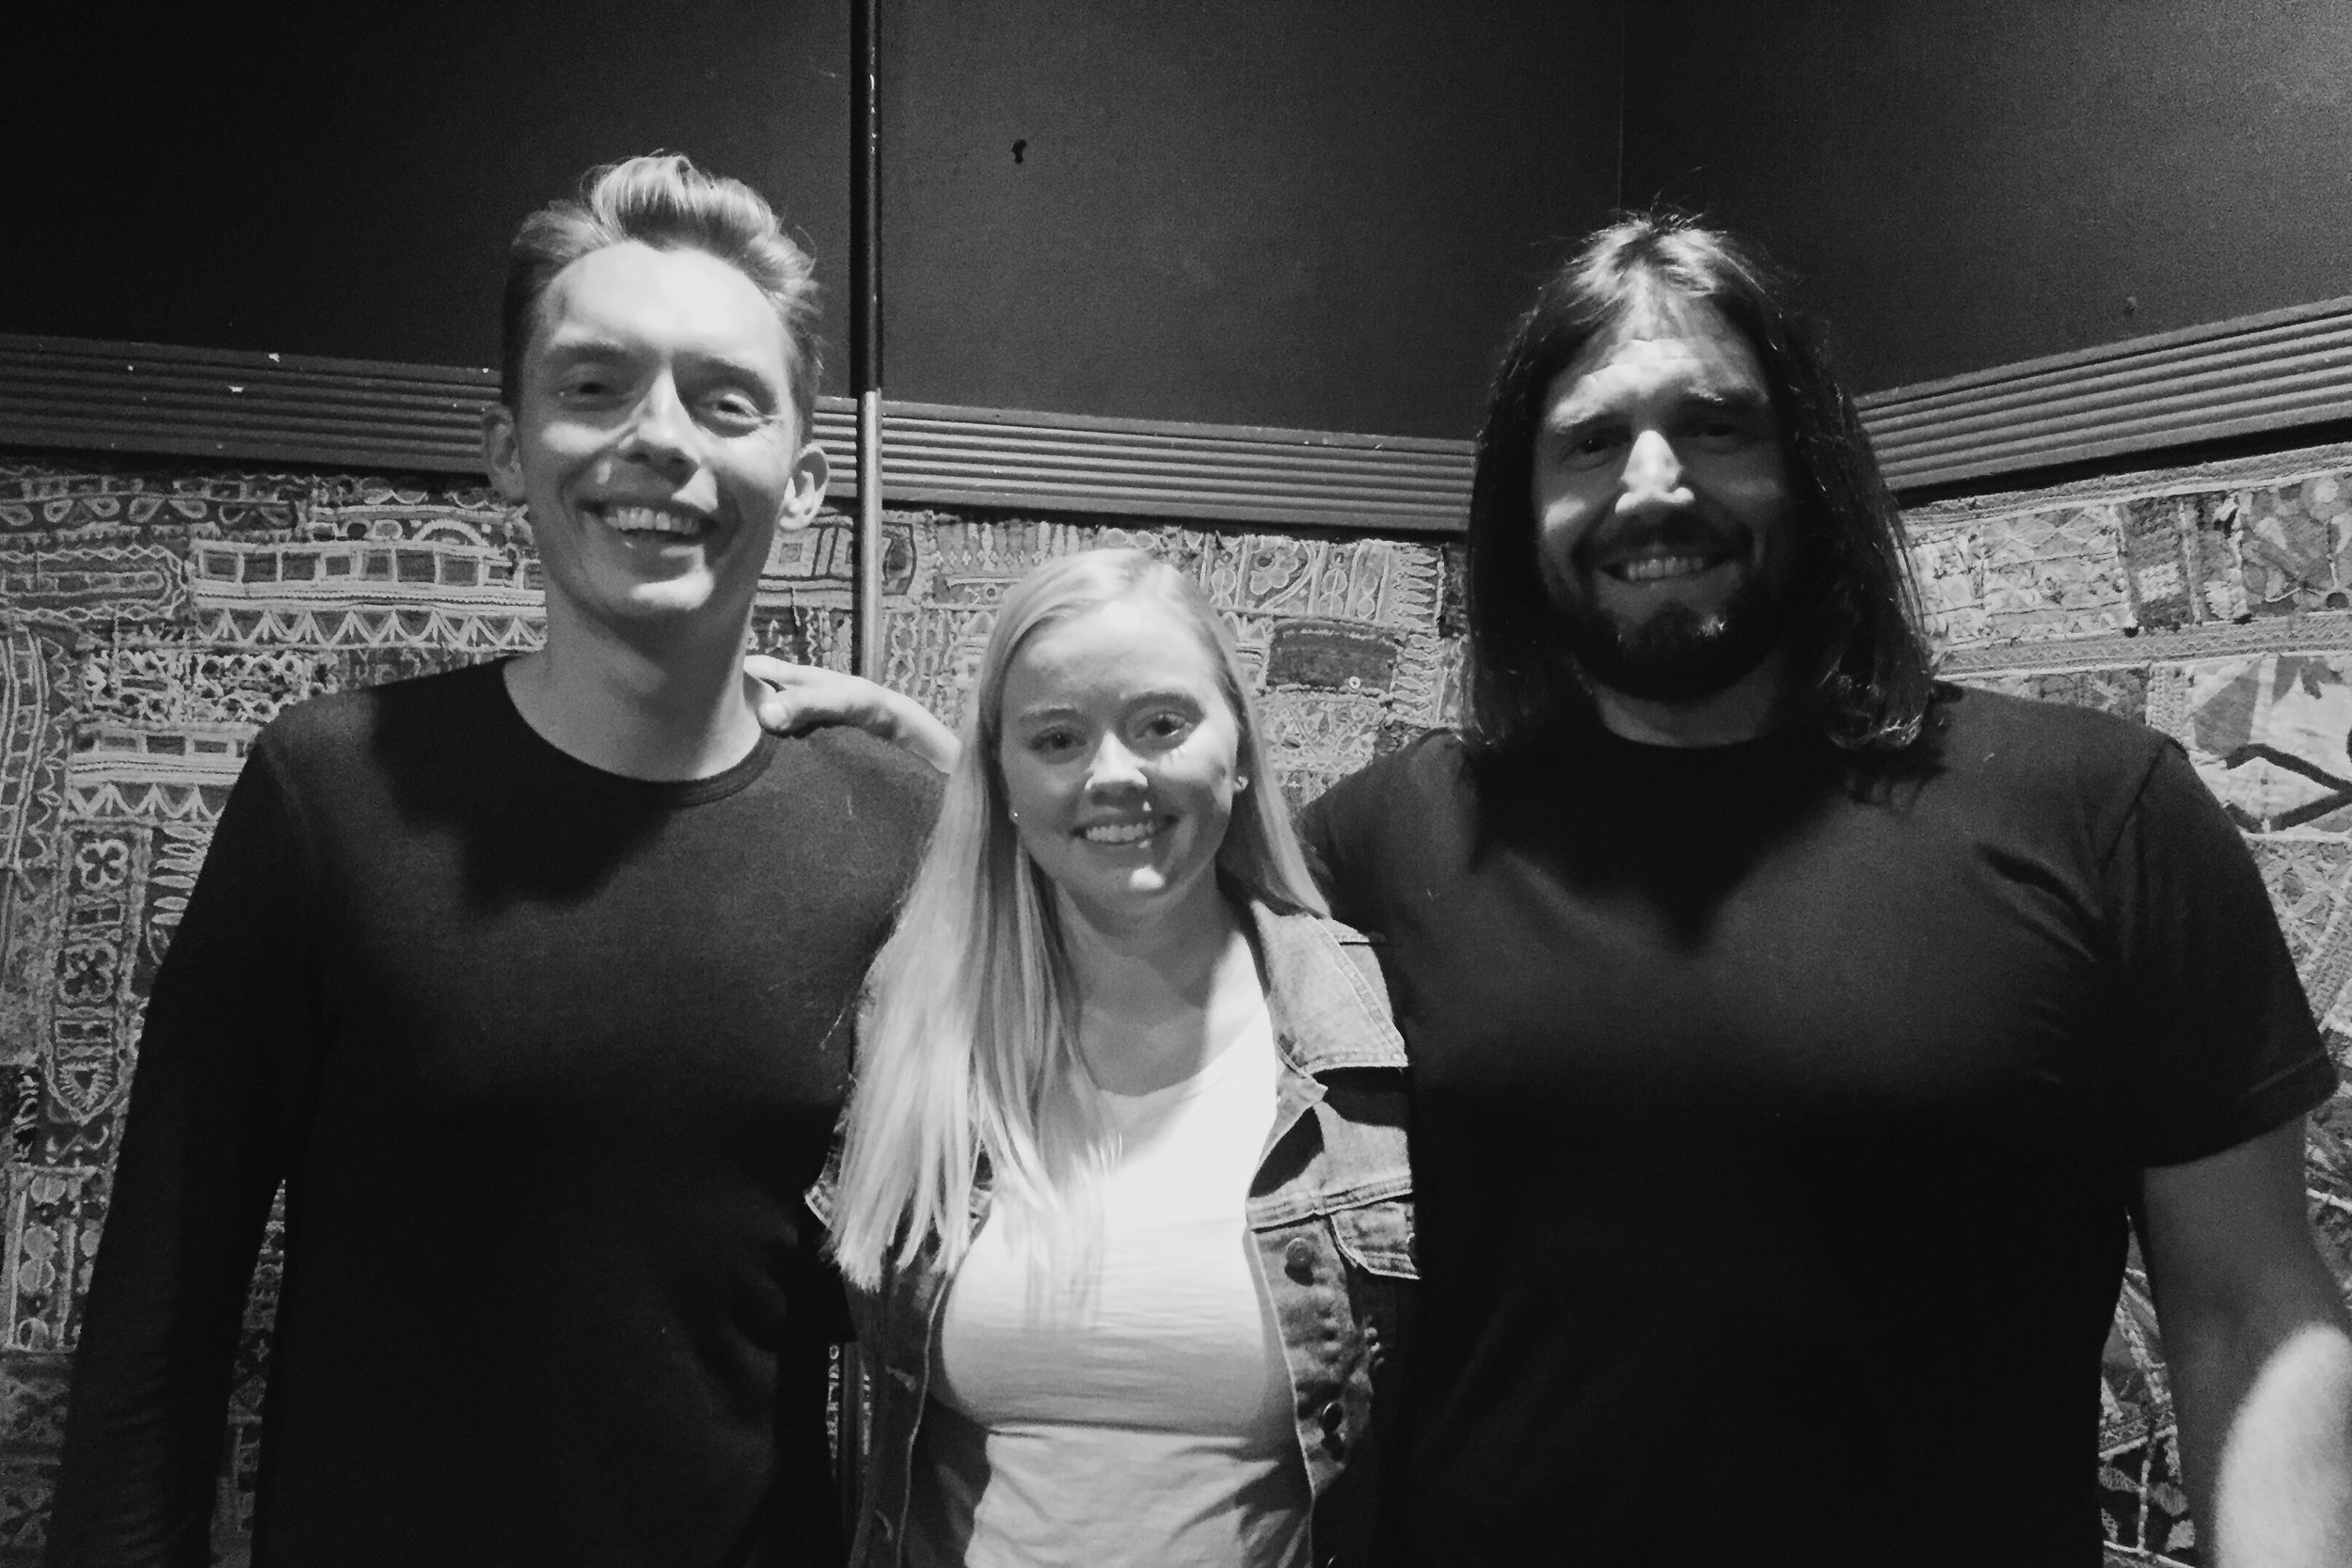 """With The Minimalists - Joshua Fields Millburn and Ryan Nicodemus - at their """"Less is Now"""" Tour."""